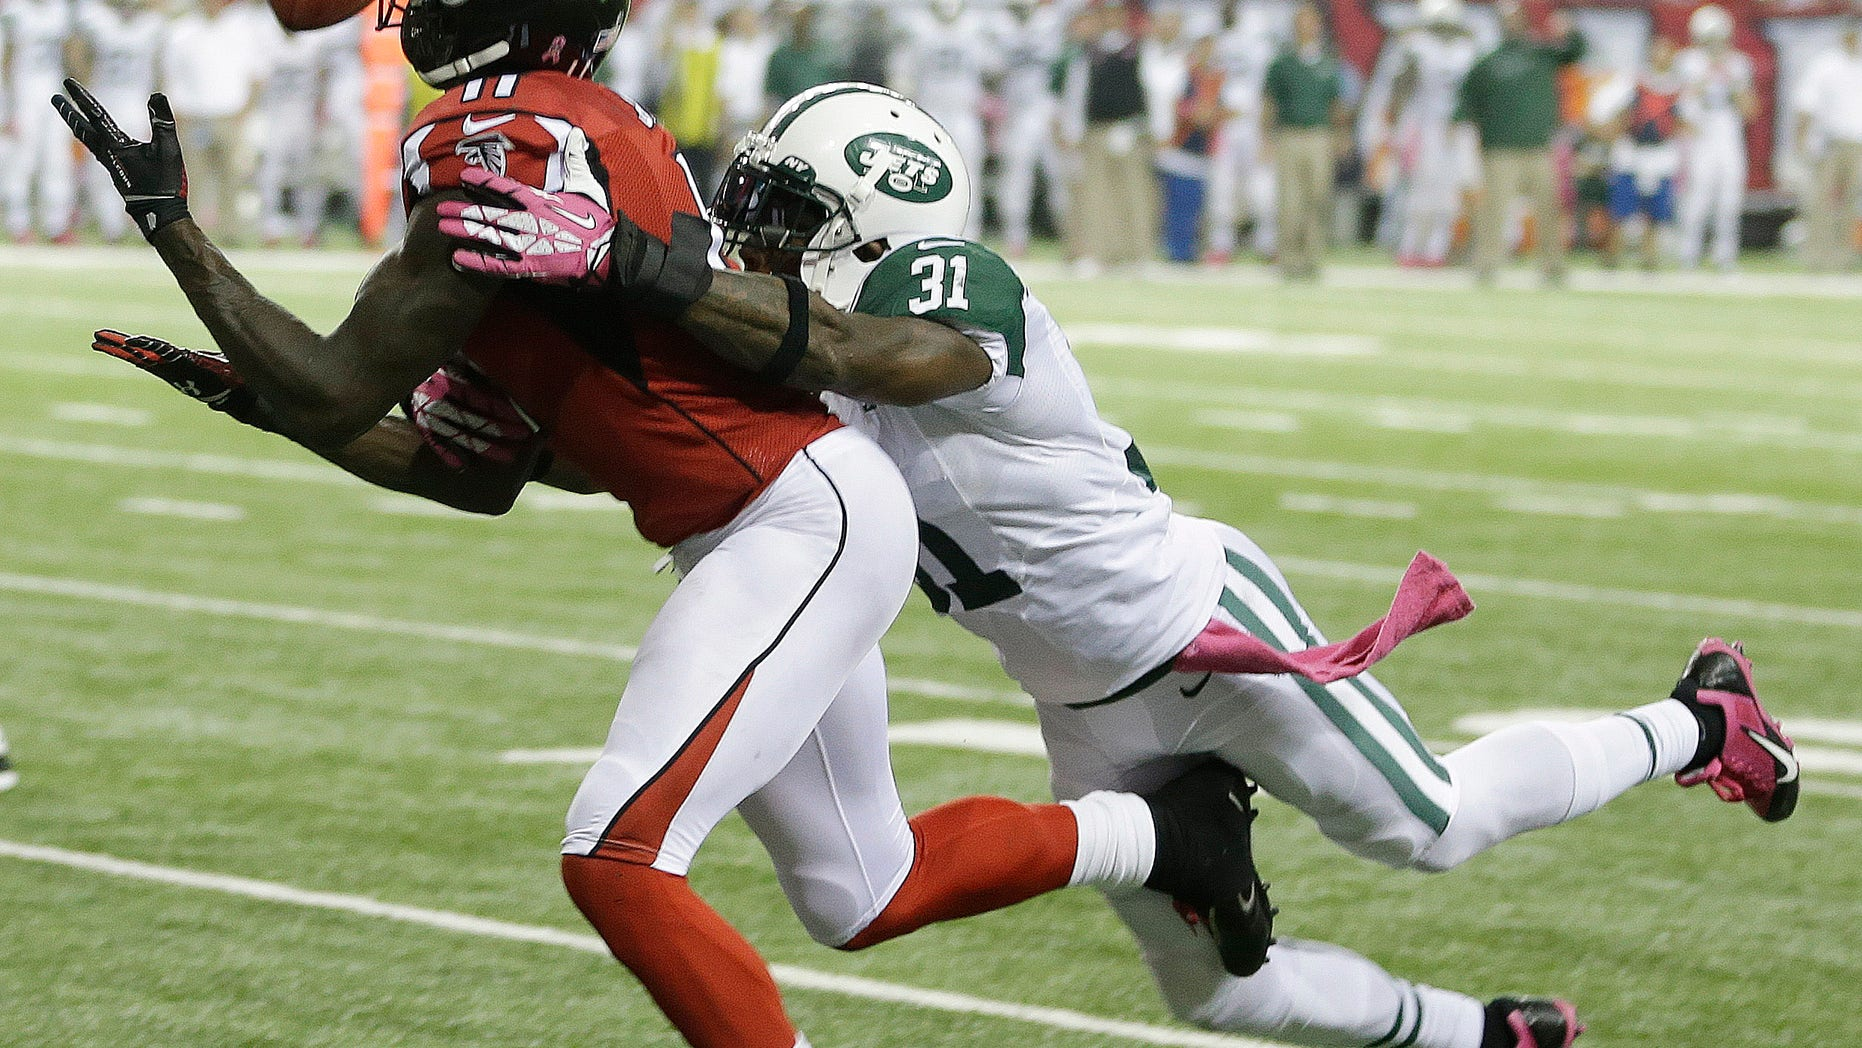 Atlanta Falcons wide receiver Julio Jones (11) misses a catch as New York Jets cornerback Antonio Cromartie (31) defends during the second half of an NFL football game, Monday, Oct. 7, 2013, in Atlanta. (AP Photo/John Bazemore)